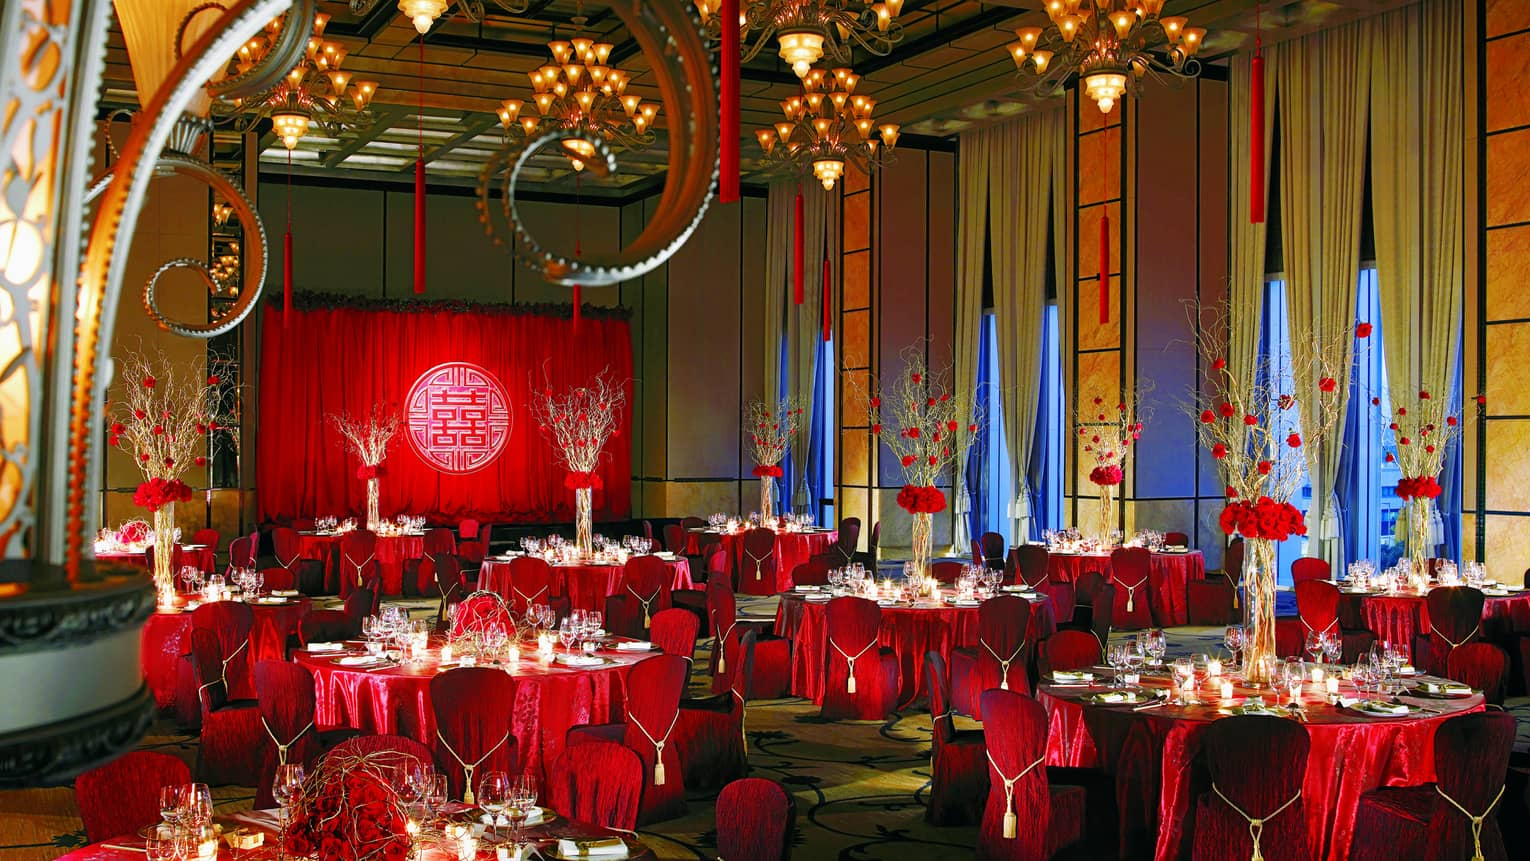 Elegant wedding banquet hall with red table linens and flower centrepieces, high ceilings, chandeliers